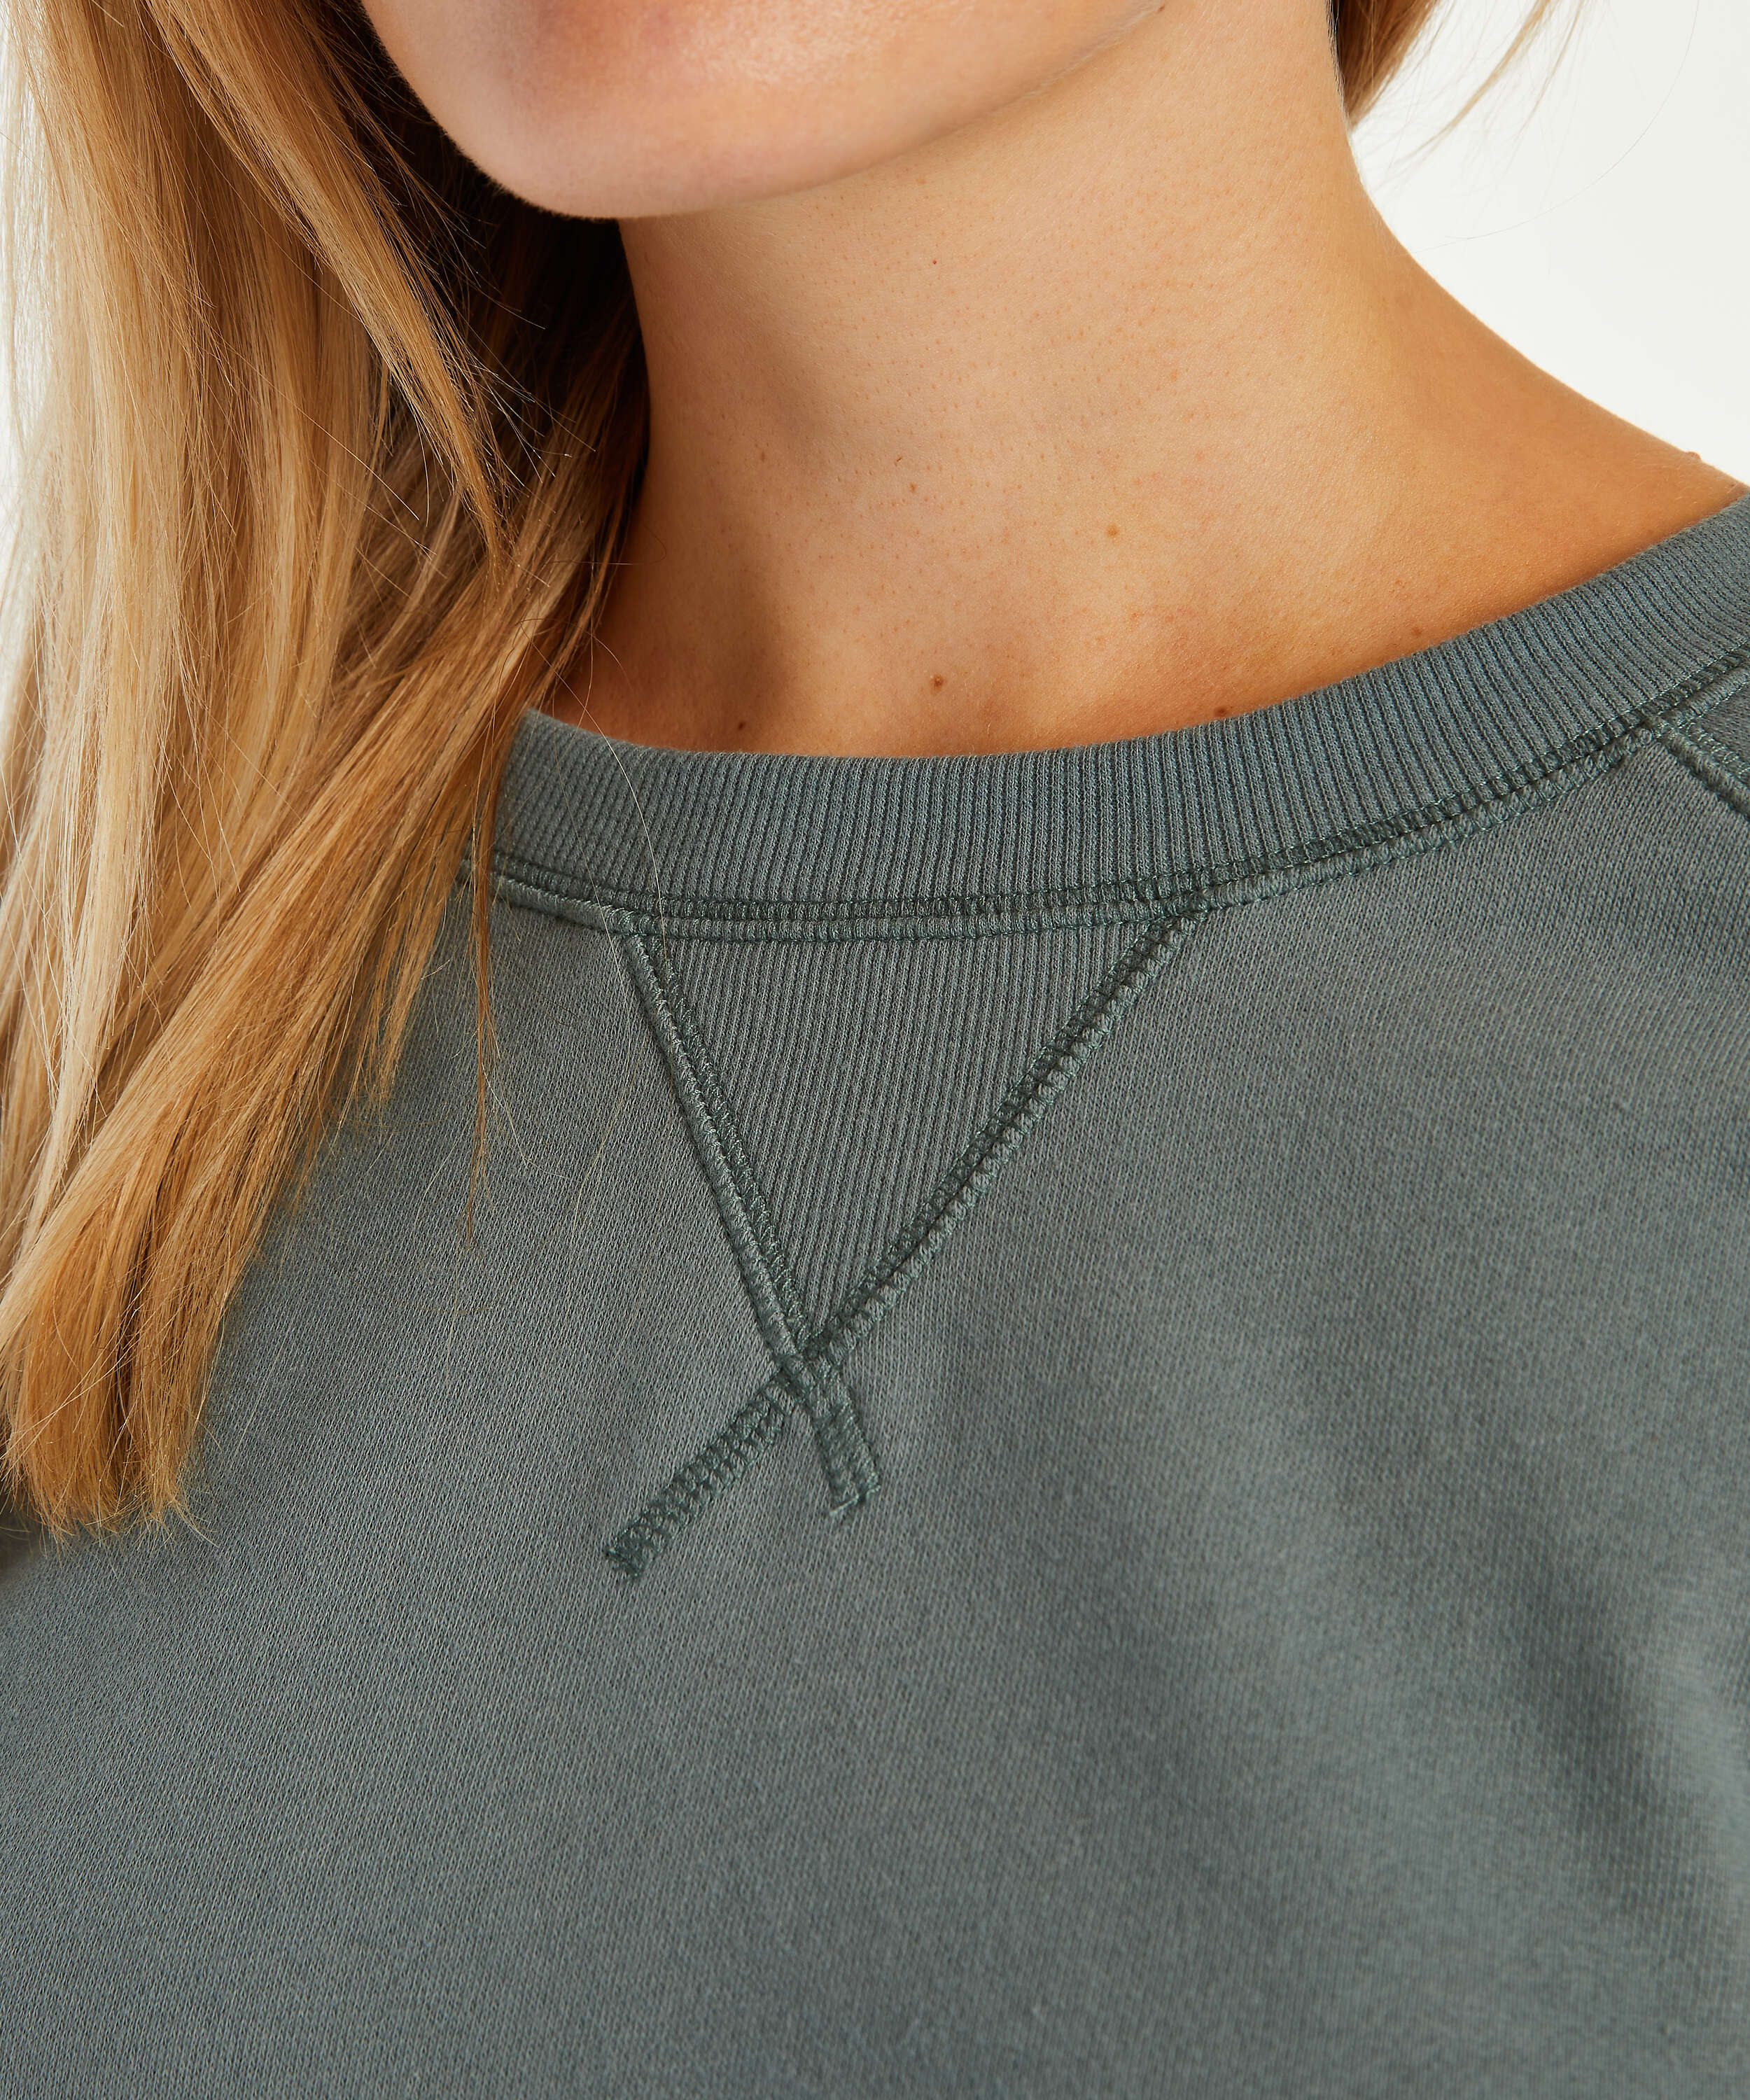 Sweat French Long-Sleeved Top, Green, main